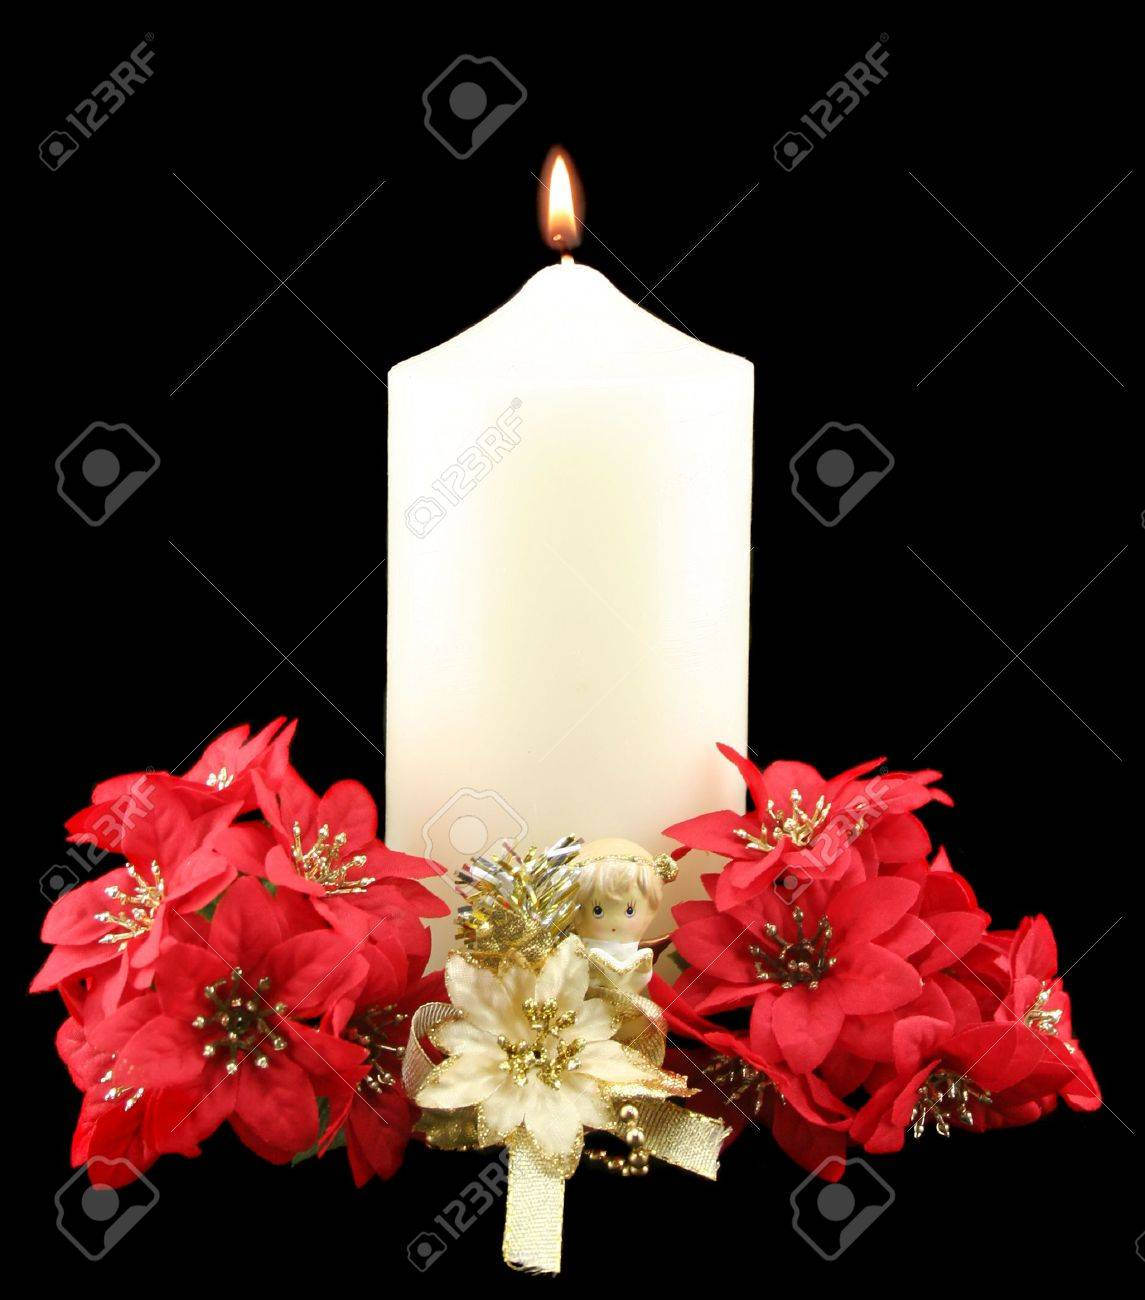 Christmas church candle with angel and red flowres. Stock Photo - 3768088